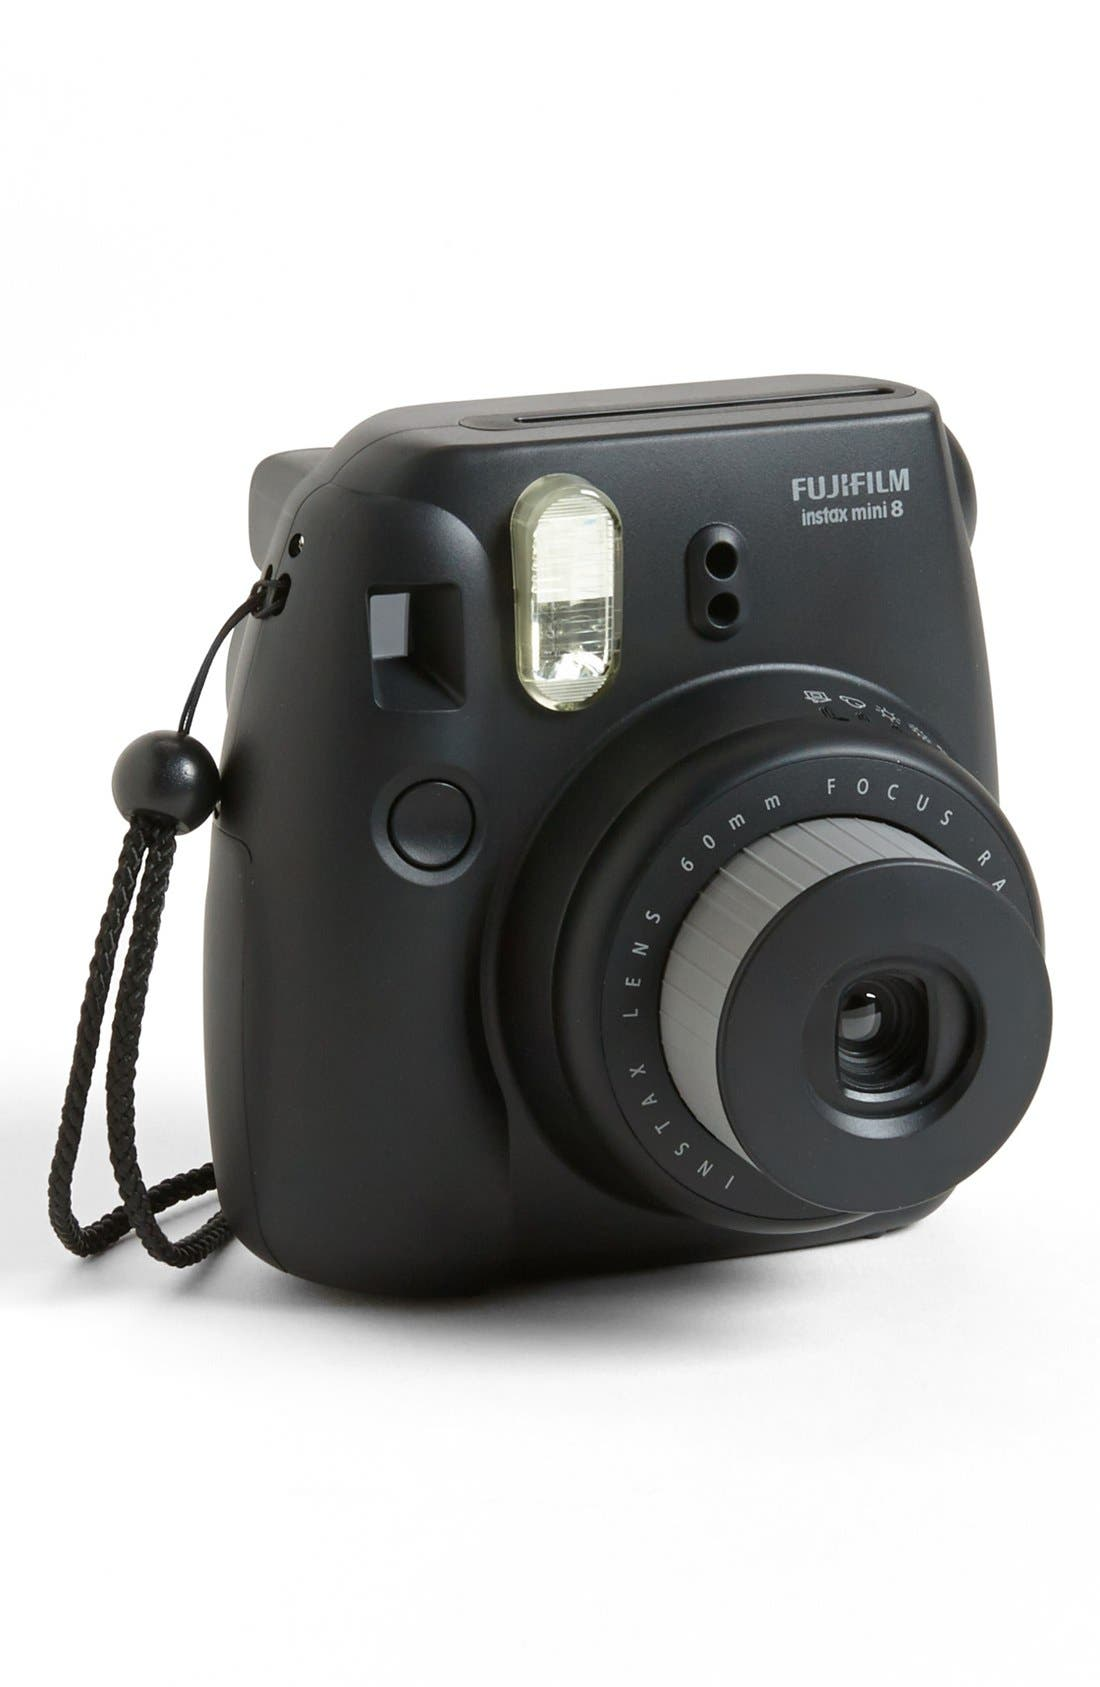 Main Image - Fujifilm 'instax mini 8' Instant Film Camera